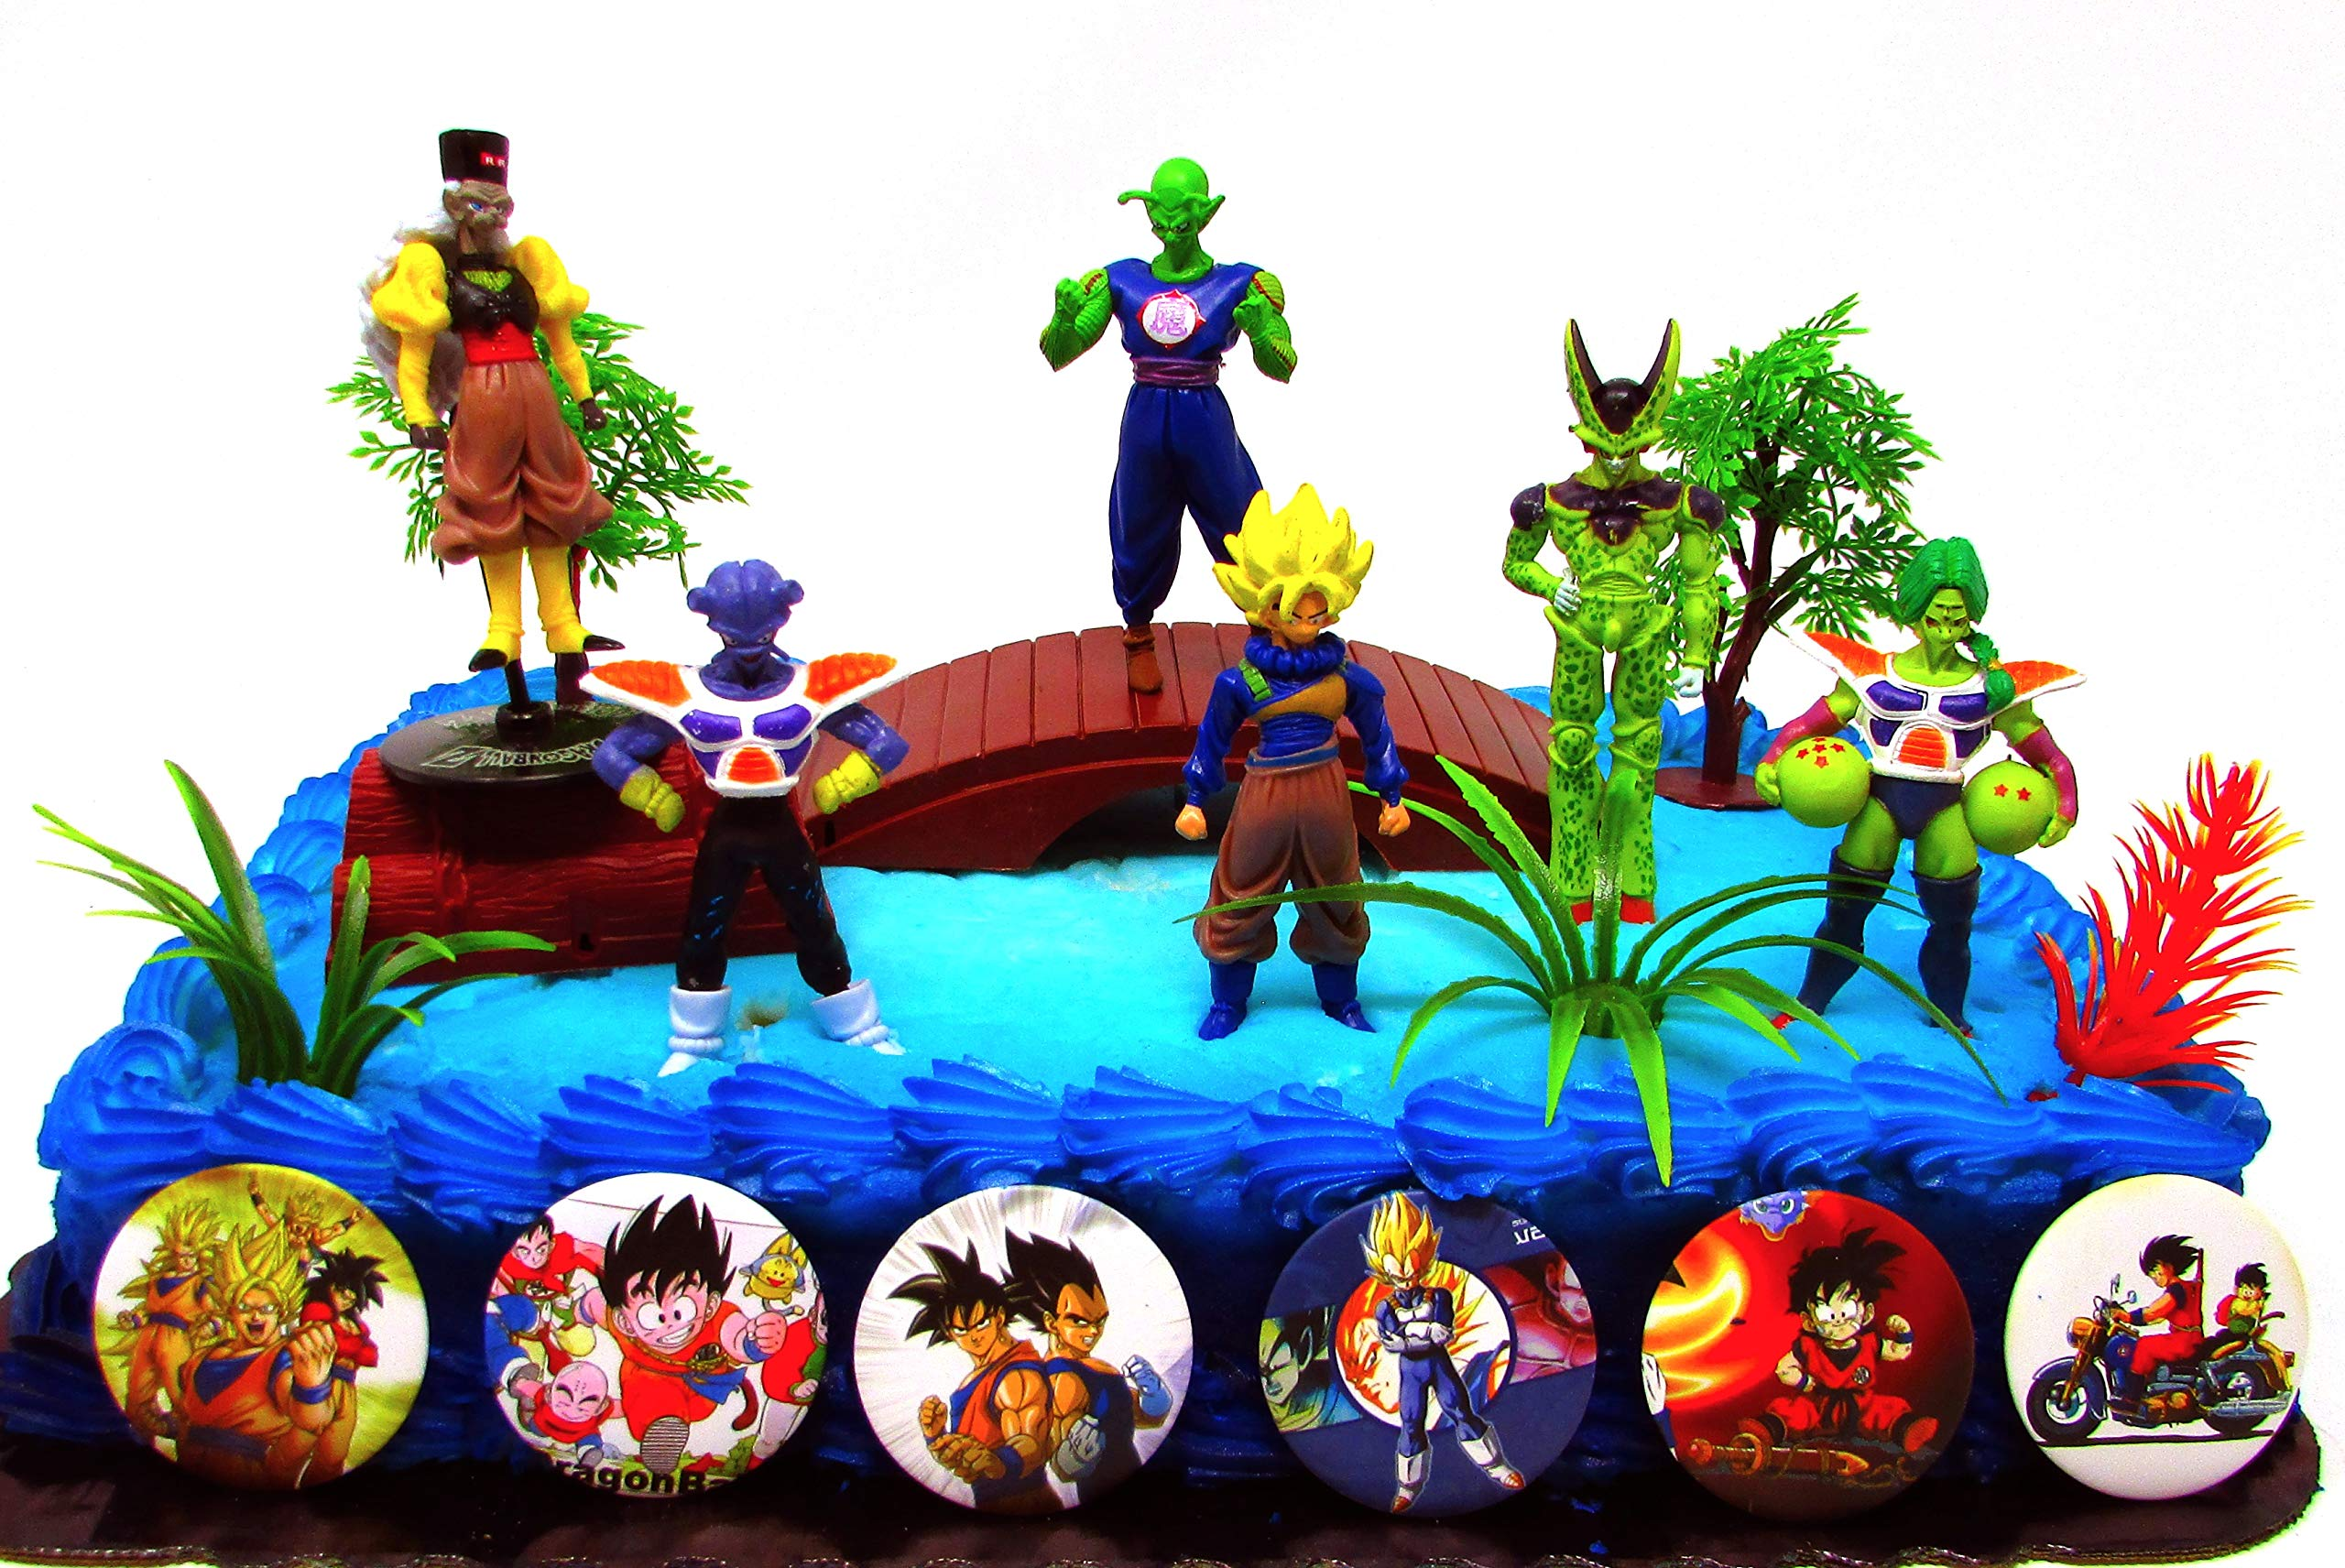 Dragon Ball Z 13 Piece Birthday Cake Topper Featuring 3 Anime Dragon Ball Z Figures and Decorative Accessories